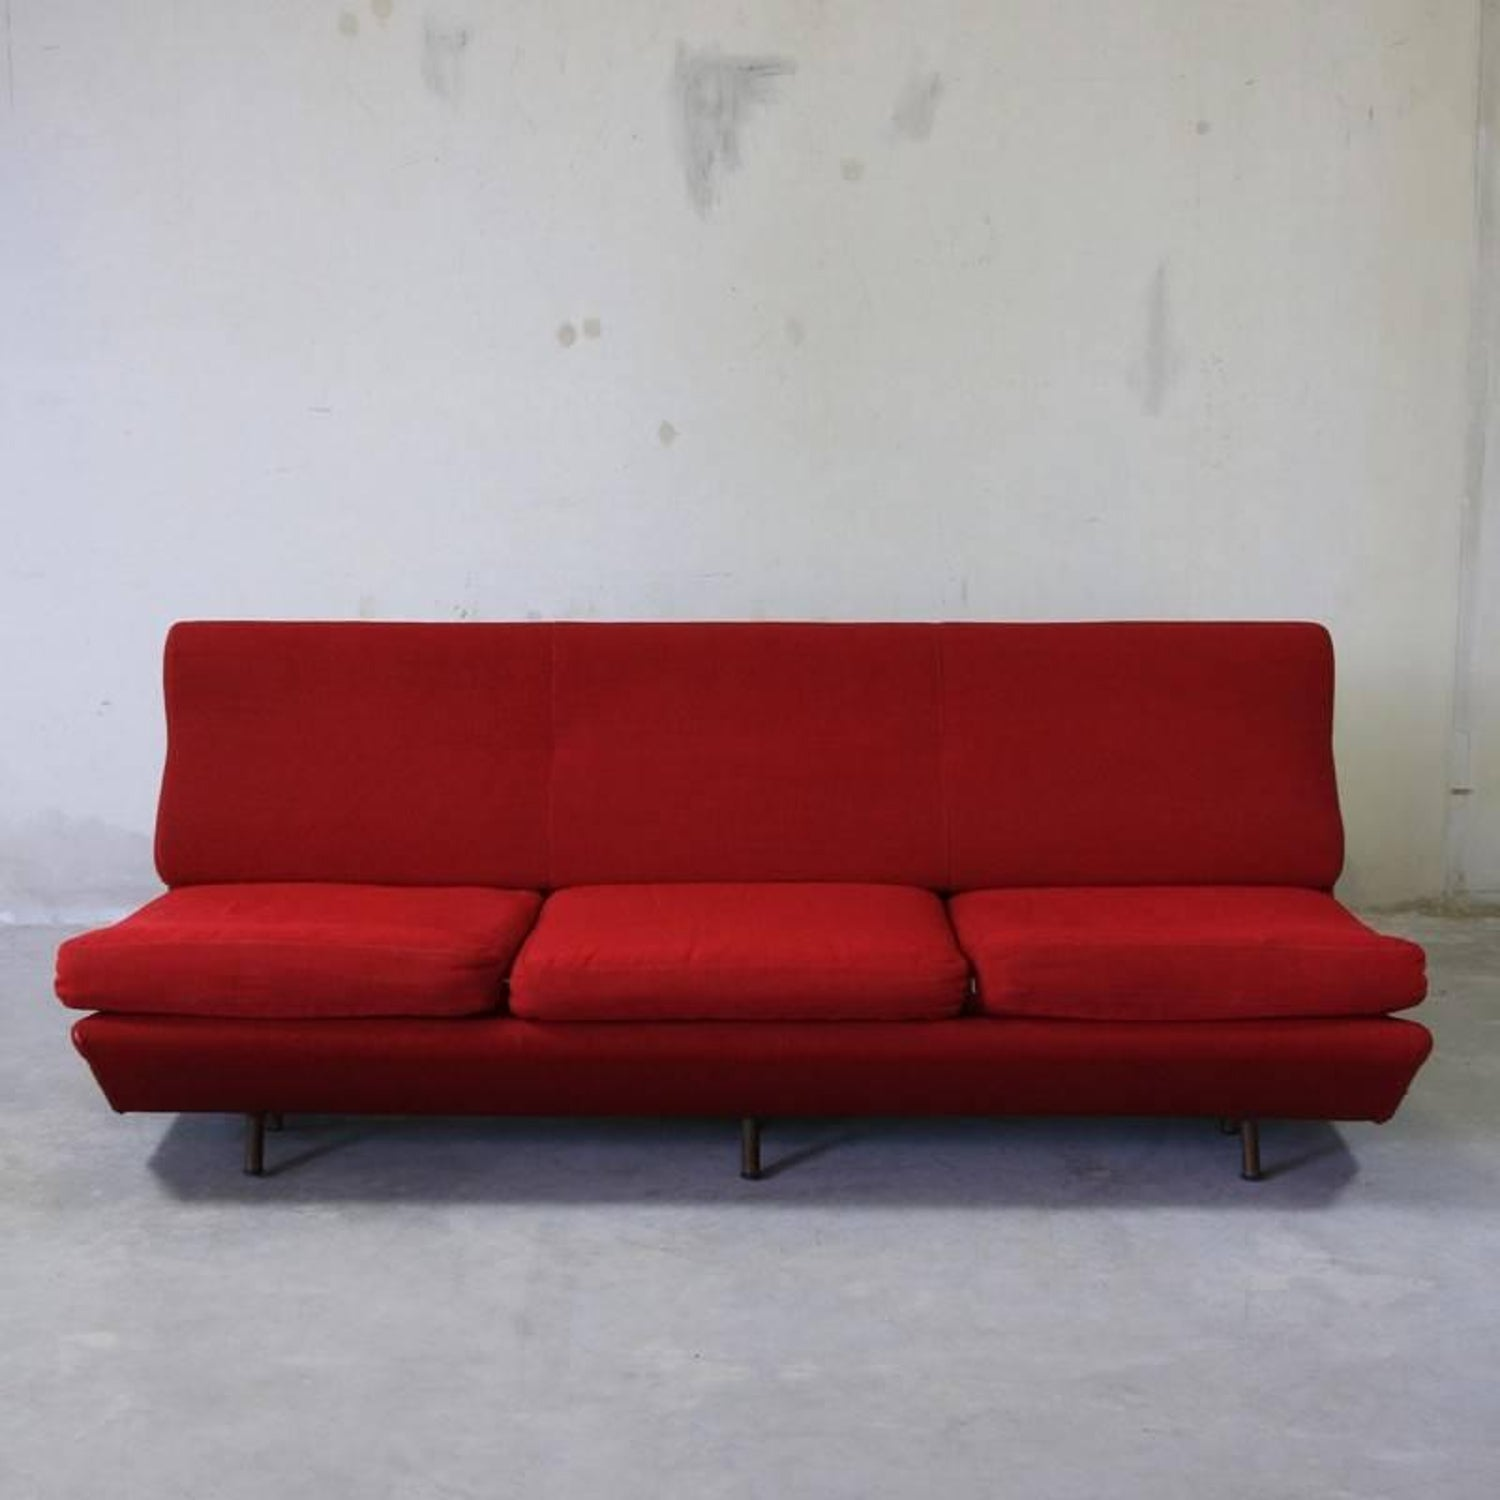 Marco Zanuso Daybed, 1951 For Sale at 1stdibs